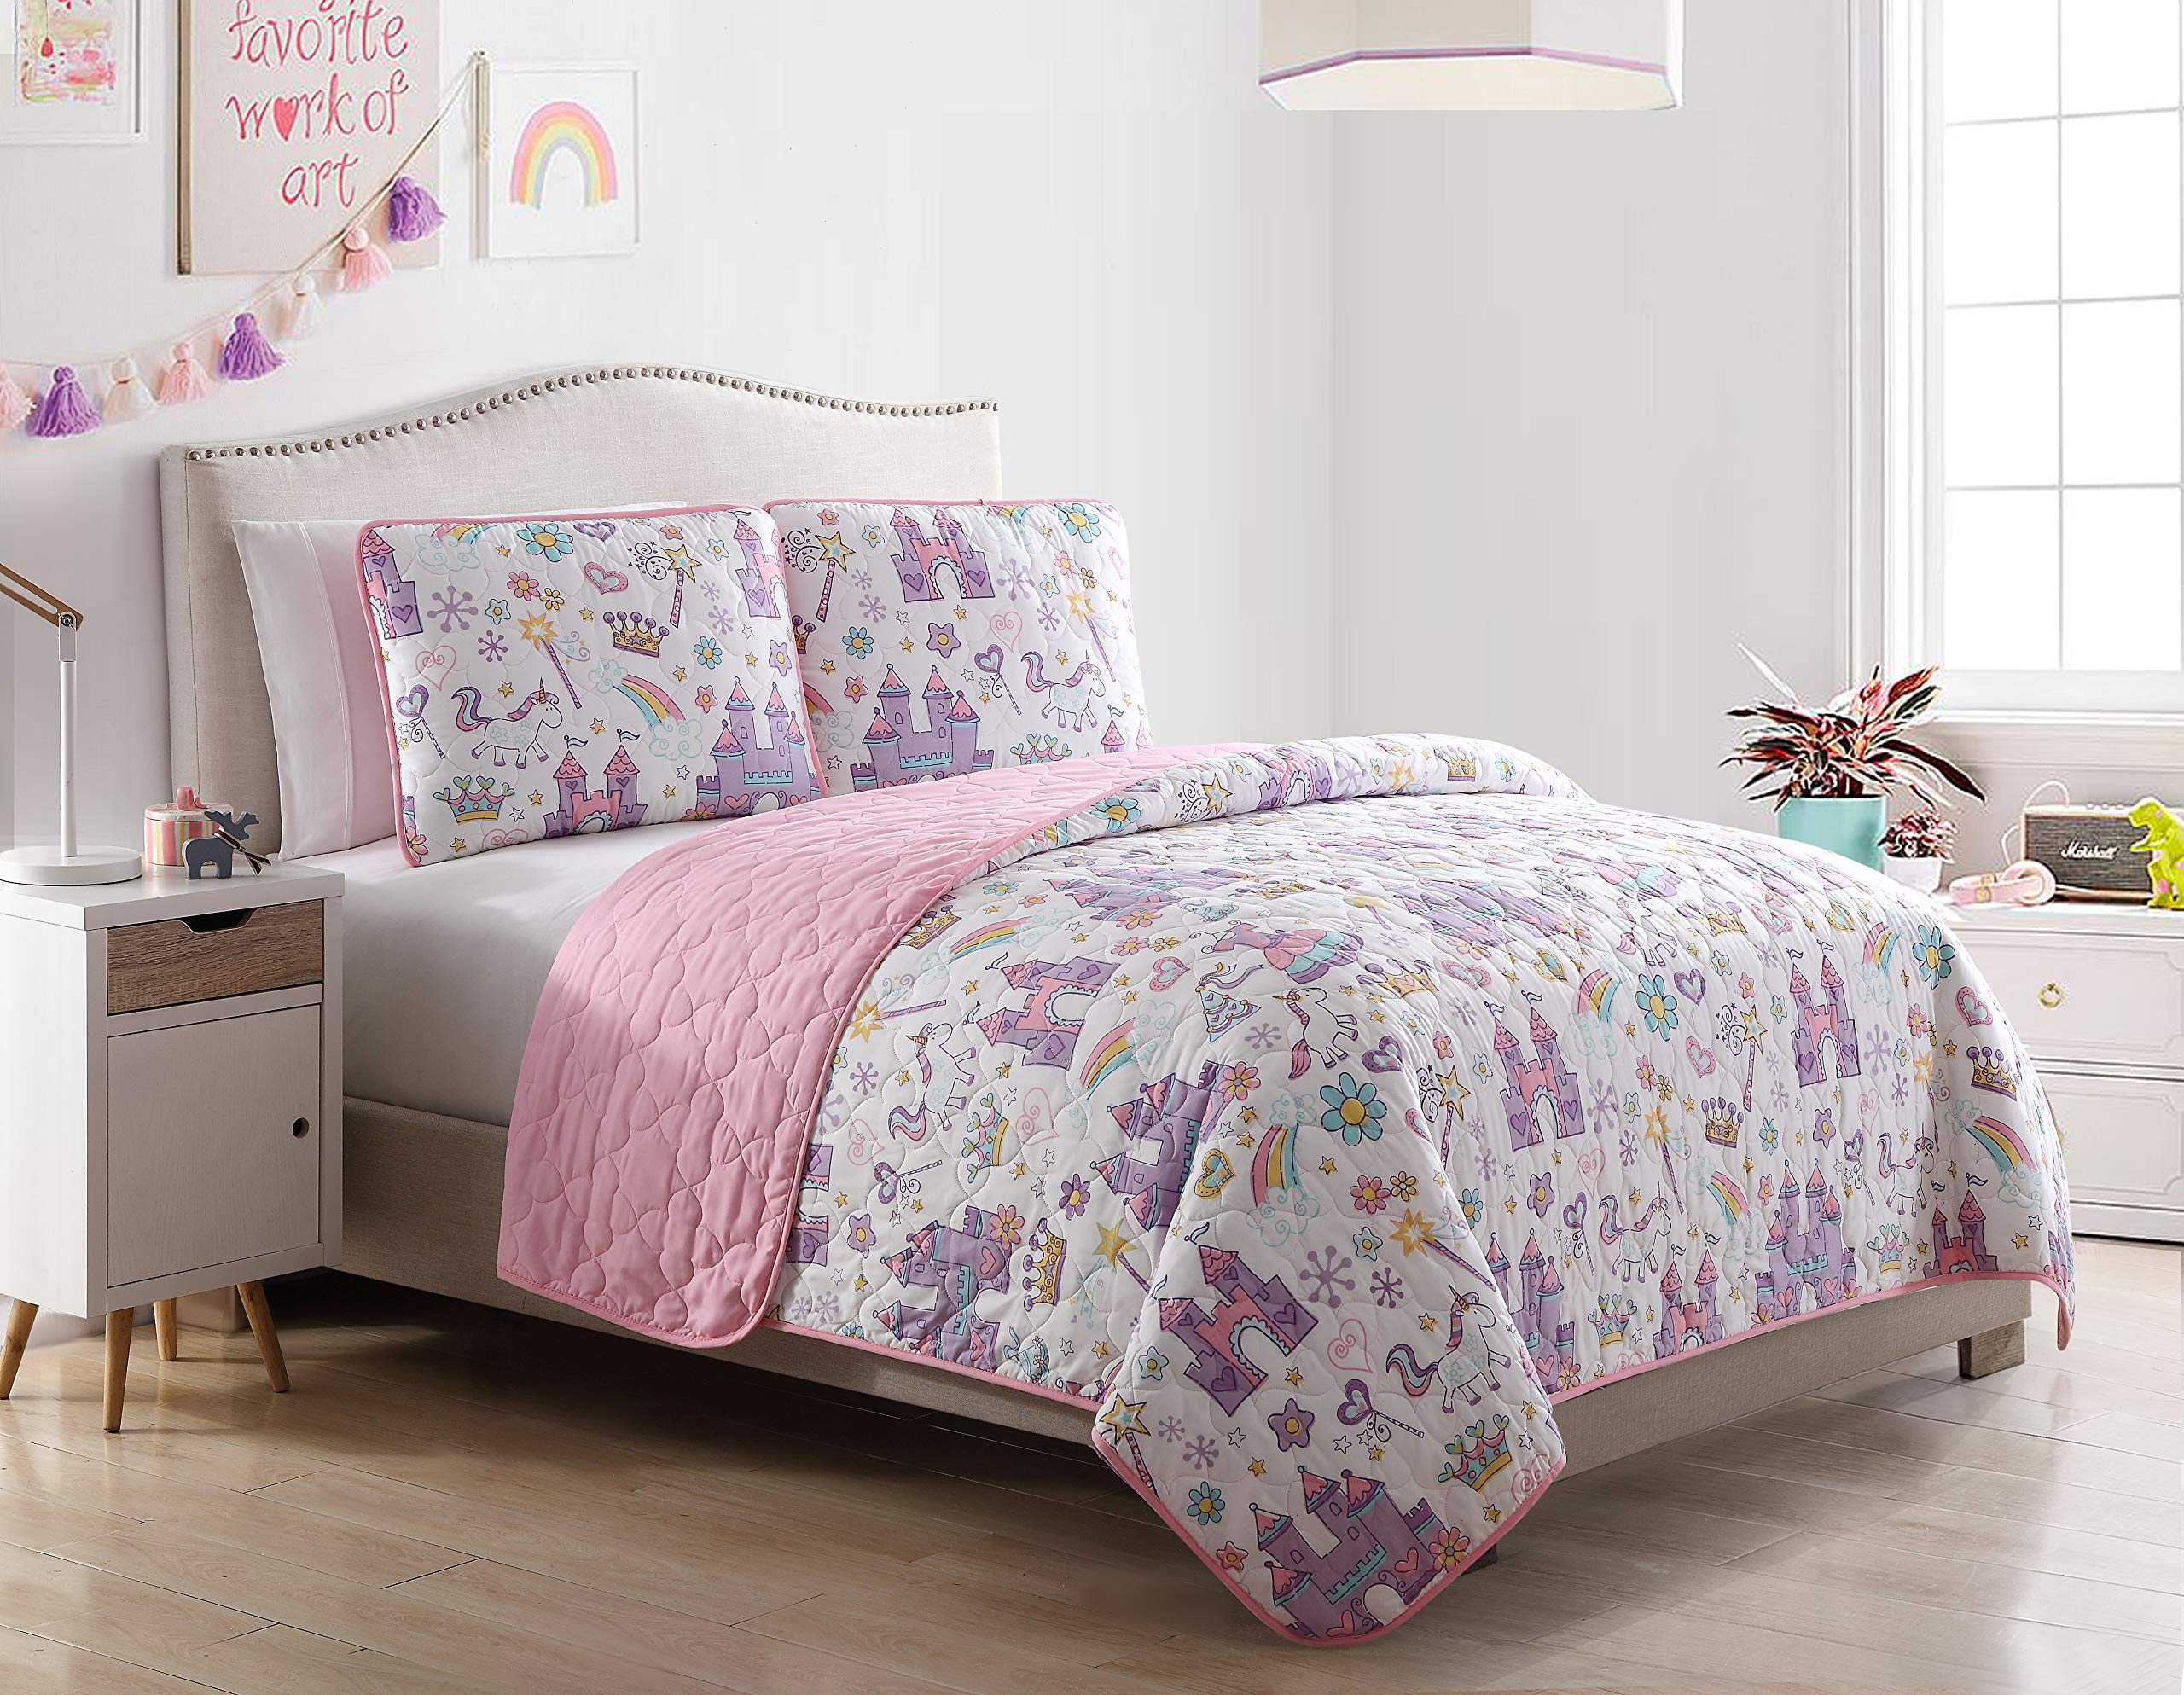 Kute Kids Unicorn Magic Castle Quilt Set, Includes Sham(s) Design Features a Castle, Rainbow, Crown and Unicorn – Available in Twin & Full/Queen (Twin)